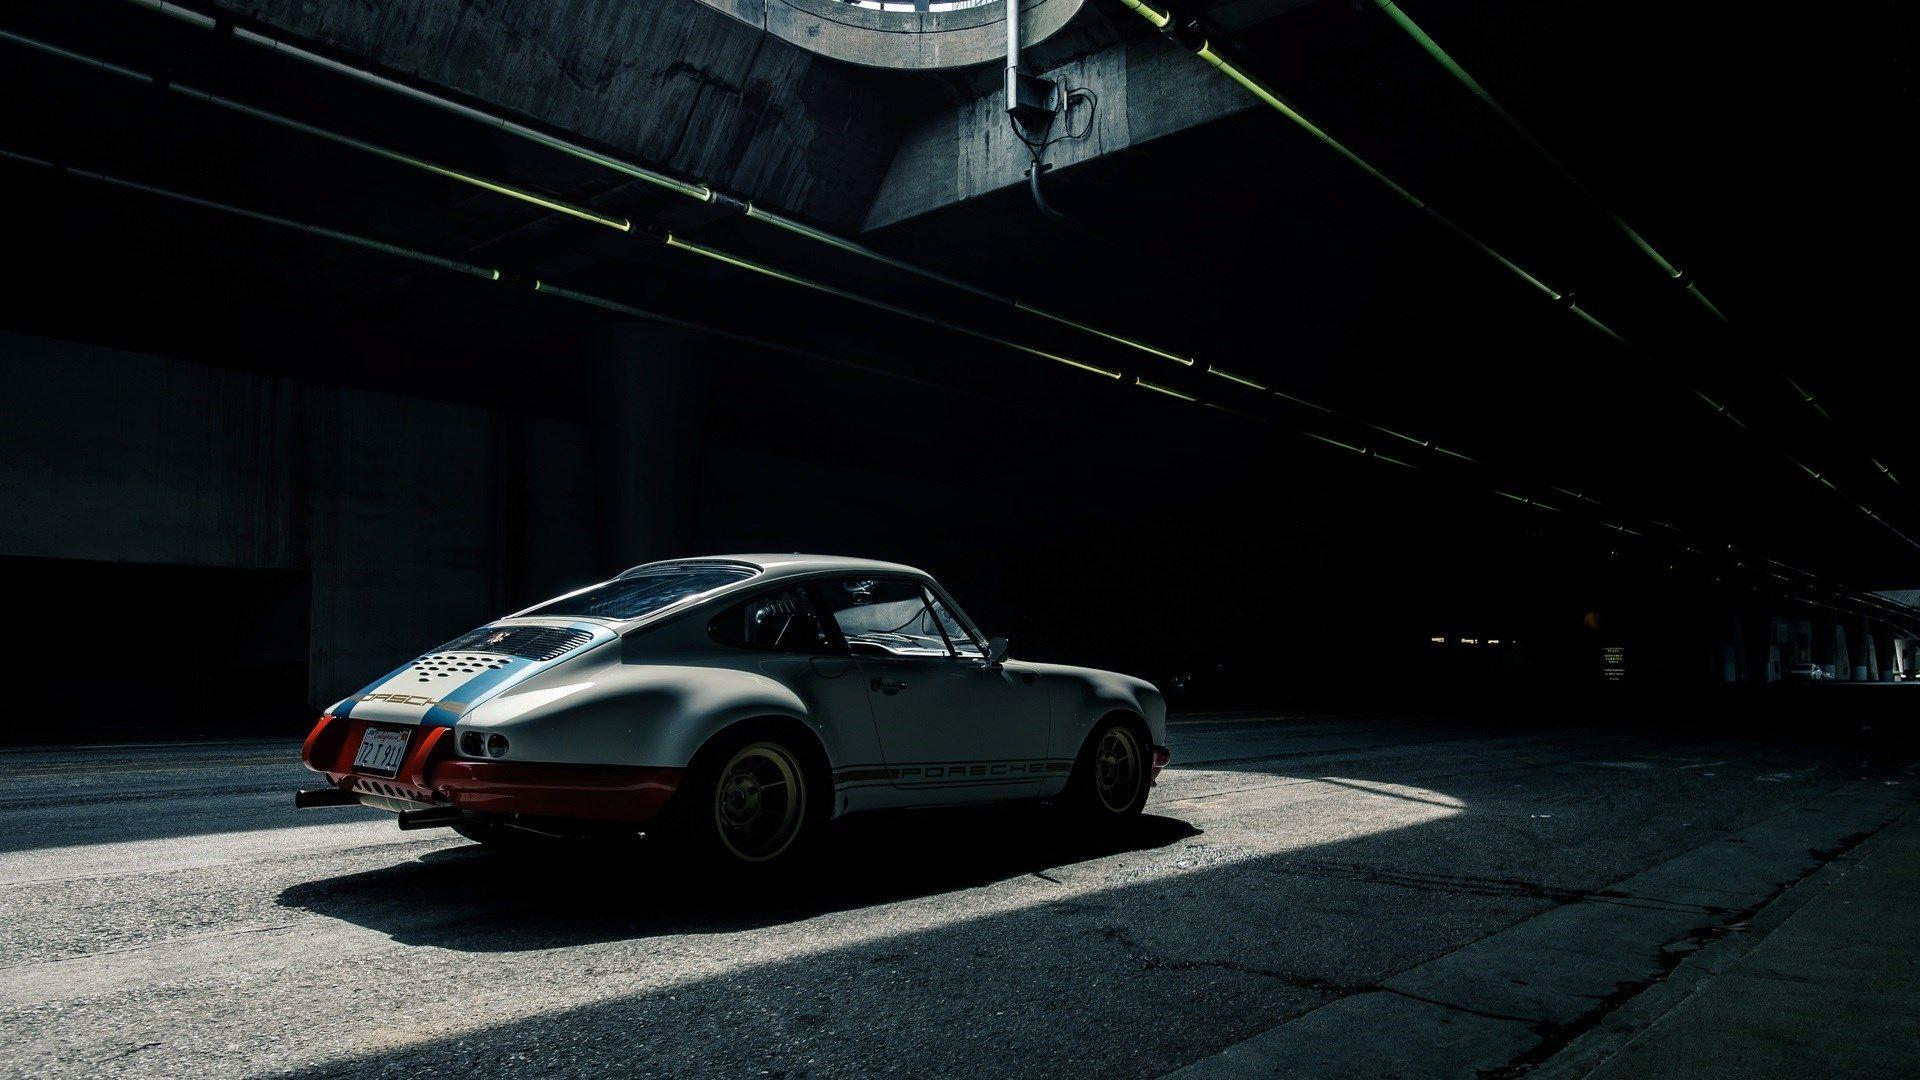 Patch of Light Tunnel Porsche 911 HD Wallpaper - ZoomWalls